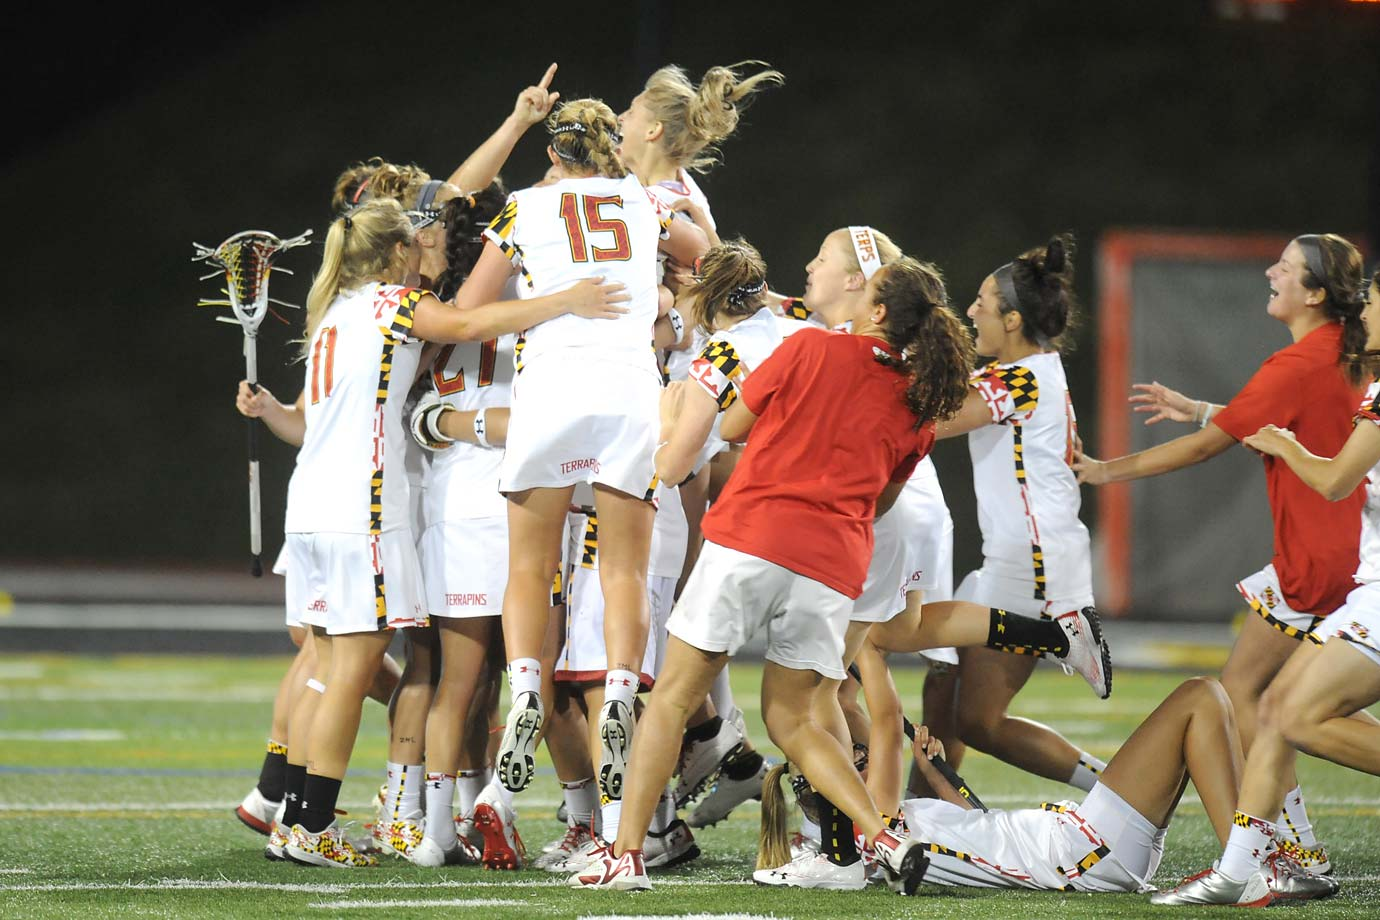 The Maryland Terrapins celebrate after defeating the Syracuse Orange 15-12 to win the Women's Lacrosse Championship for the 11th time.  The triumph was special considering they lost in last year's final by one goal.